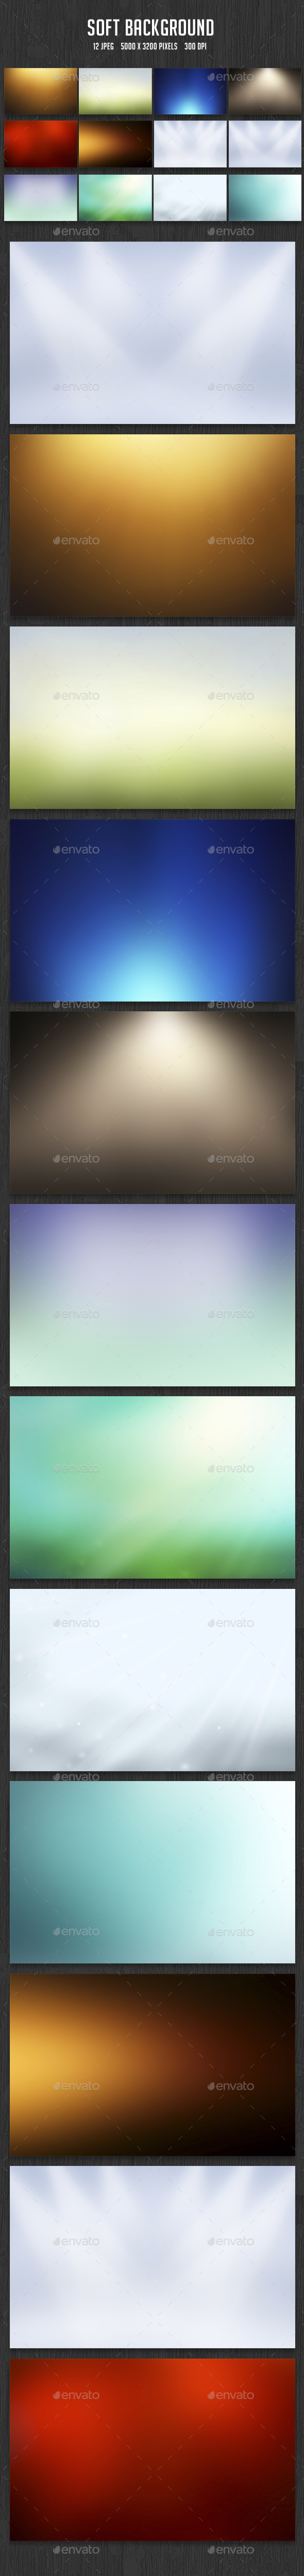 12 Blur Background - Backgrounds Graphics